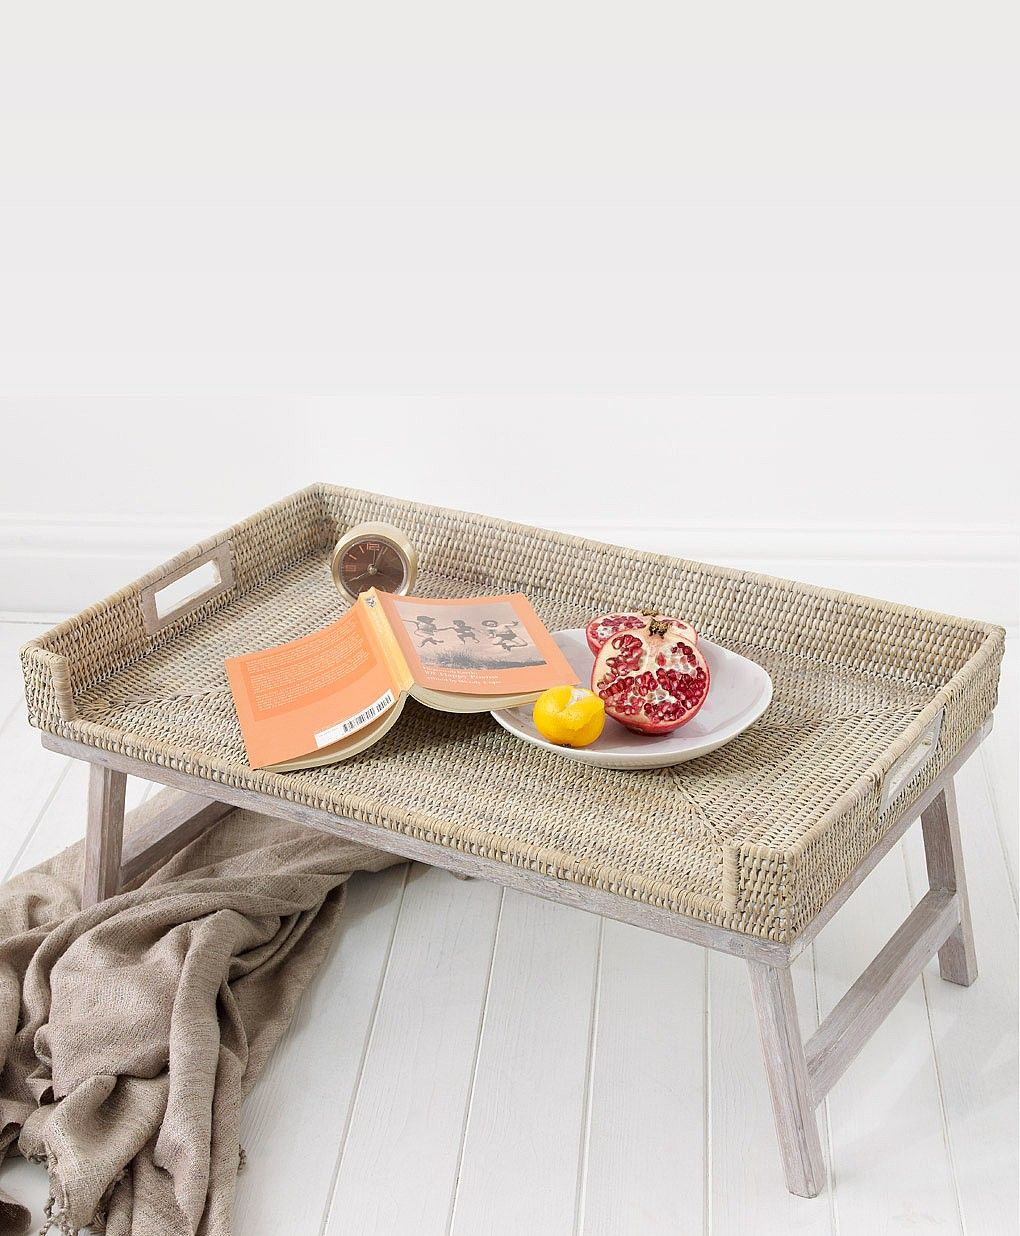 Breakfast Trays For Bed New Rattan Breakfast Tray  Breakfast Tray Rattan And Trays Design Inspiration